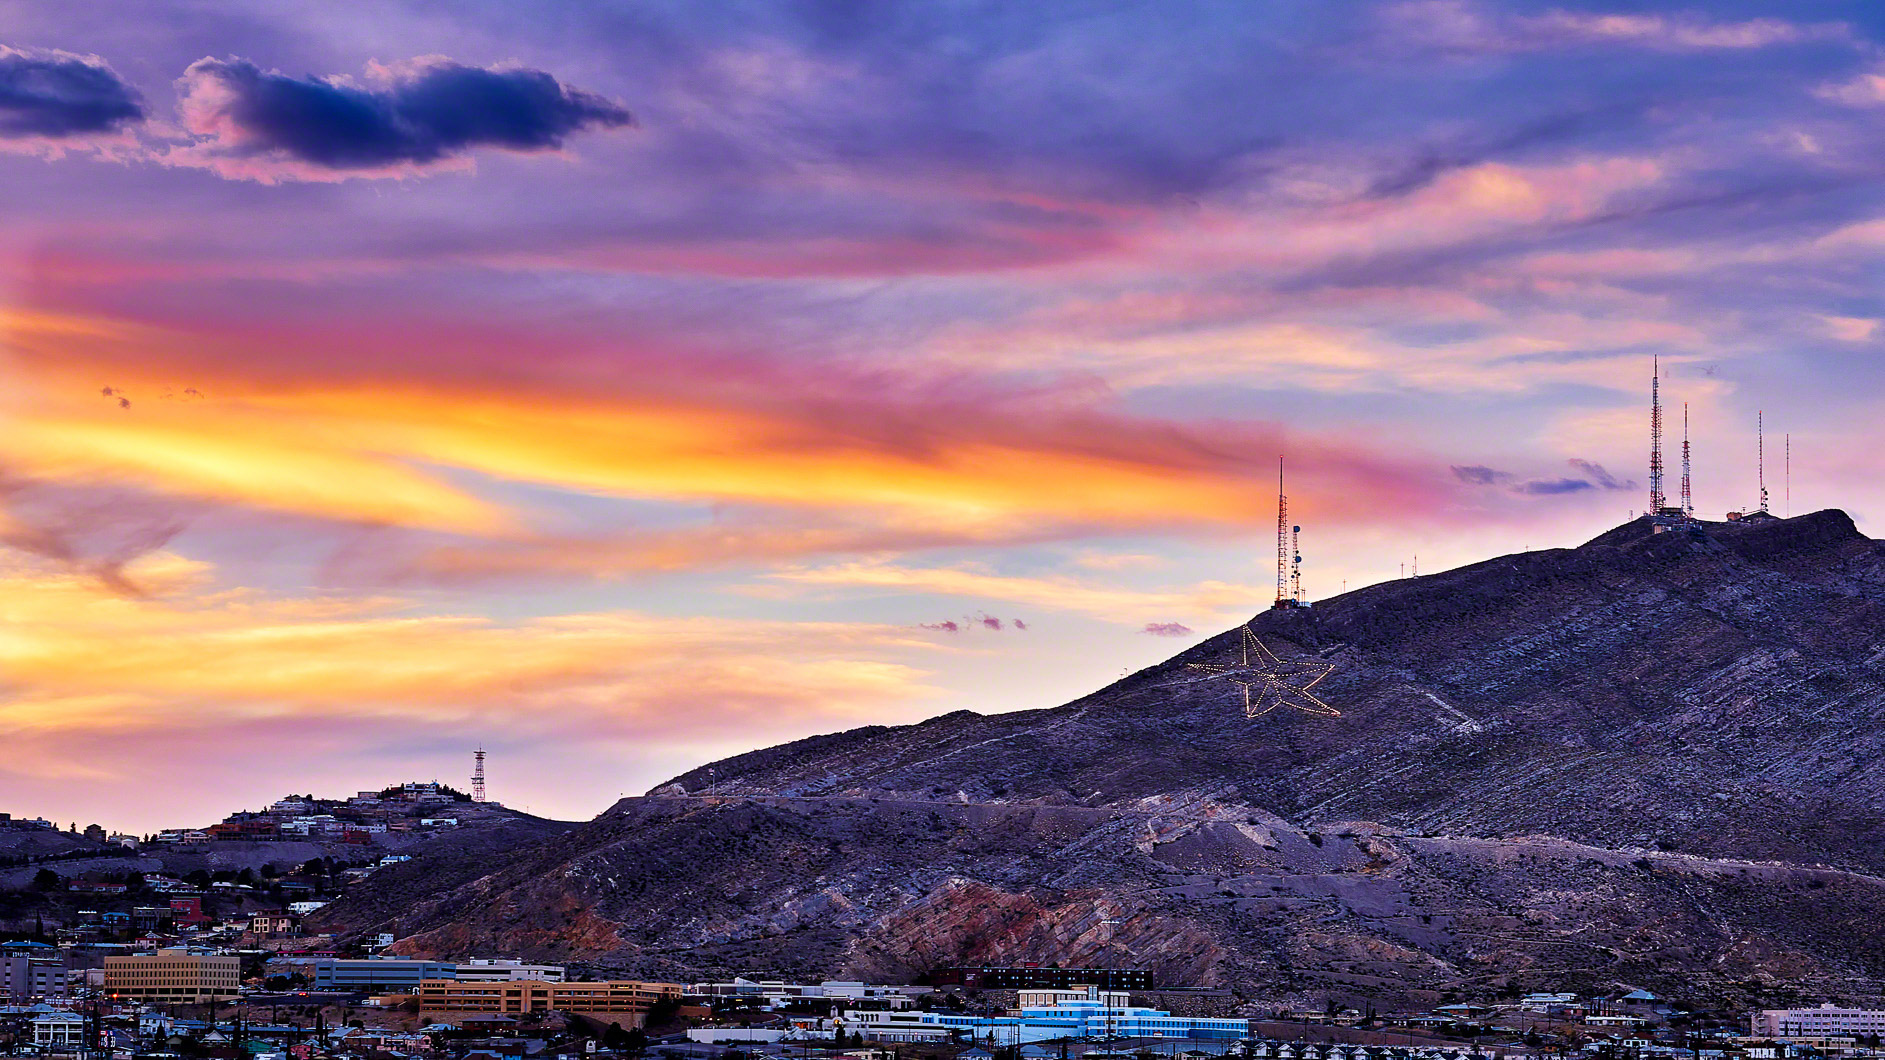 Sunset in El Paso, Texas